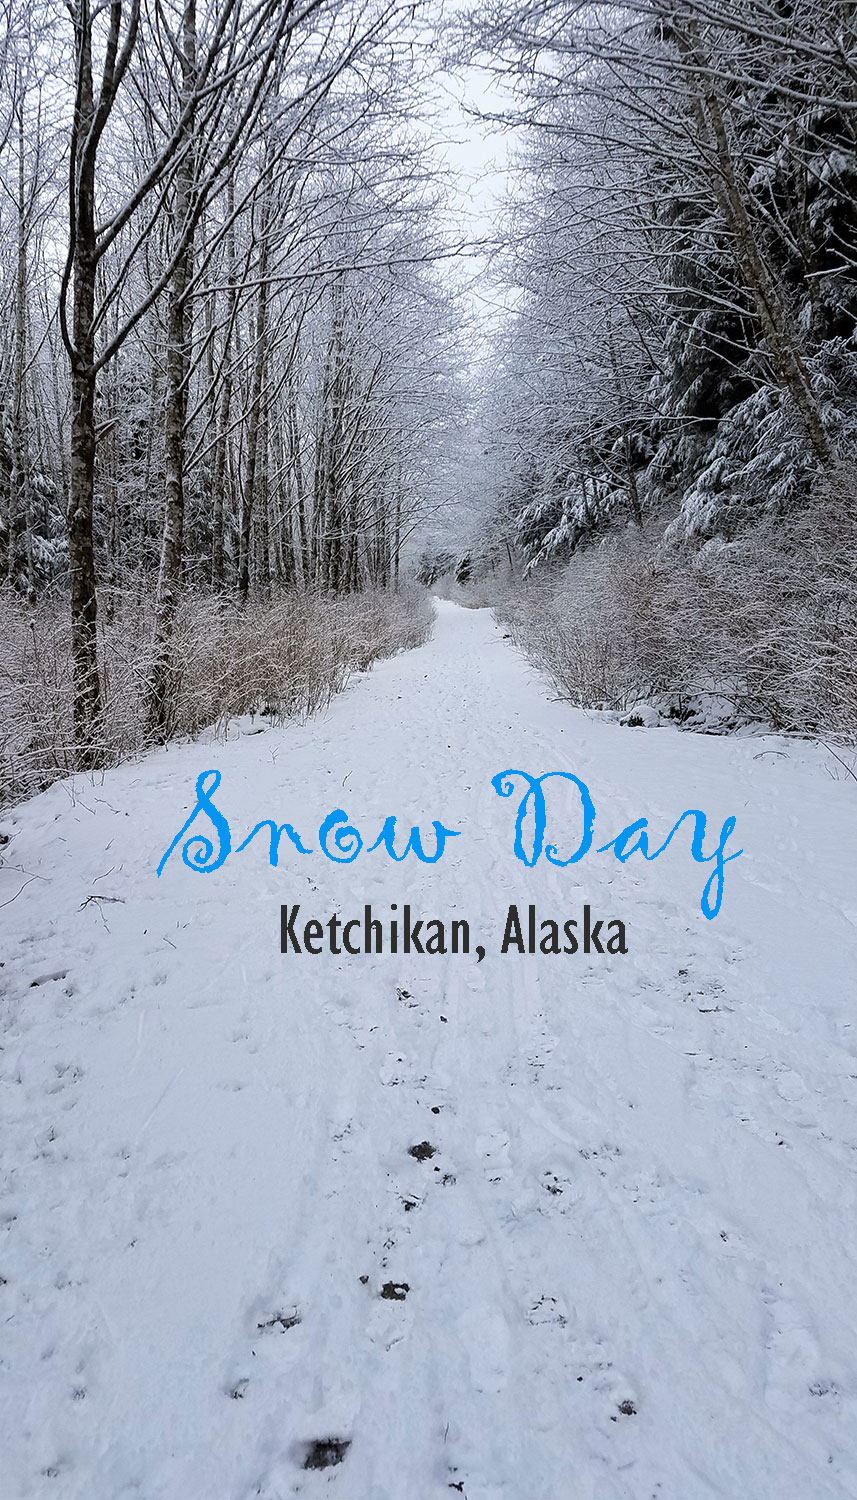 snow-day-in-ketchikan-alaska-photoblog